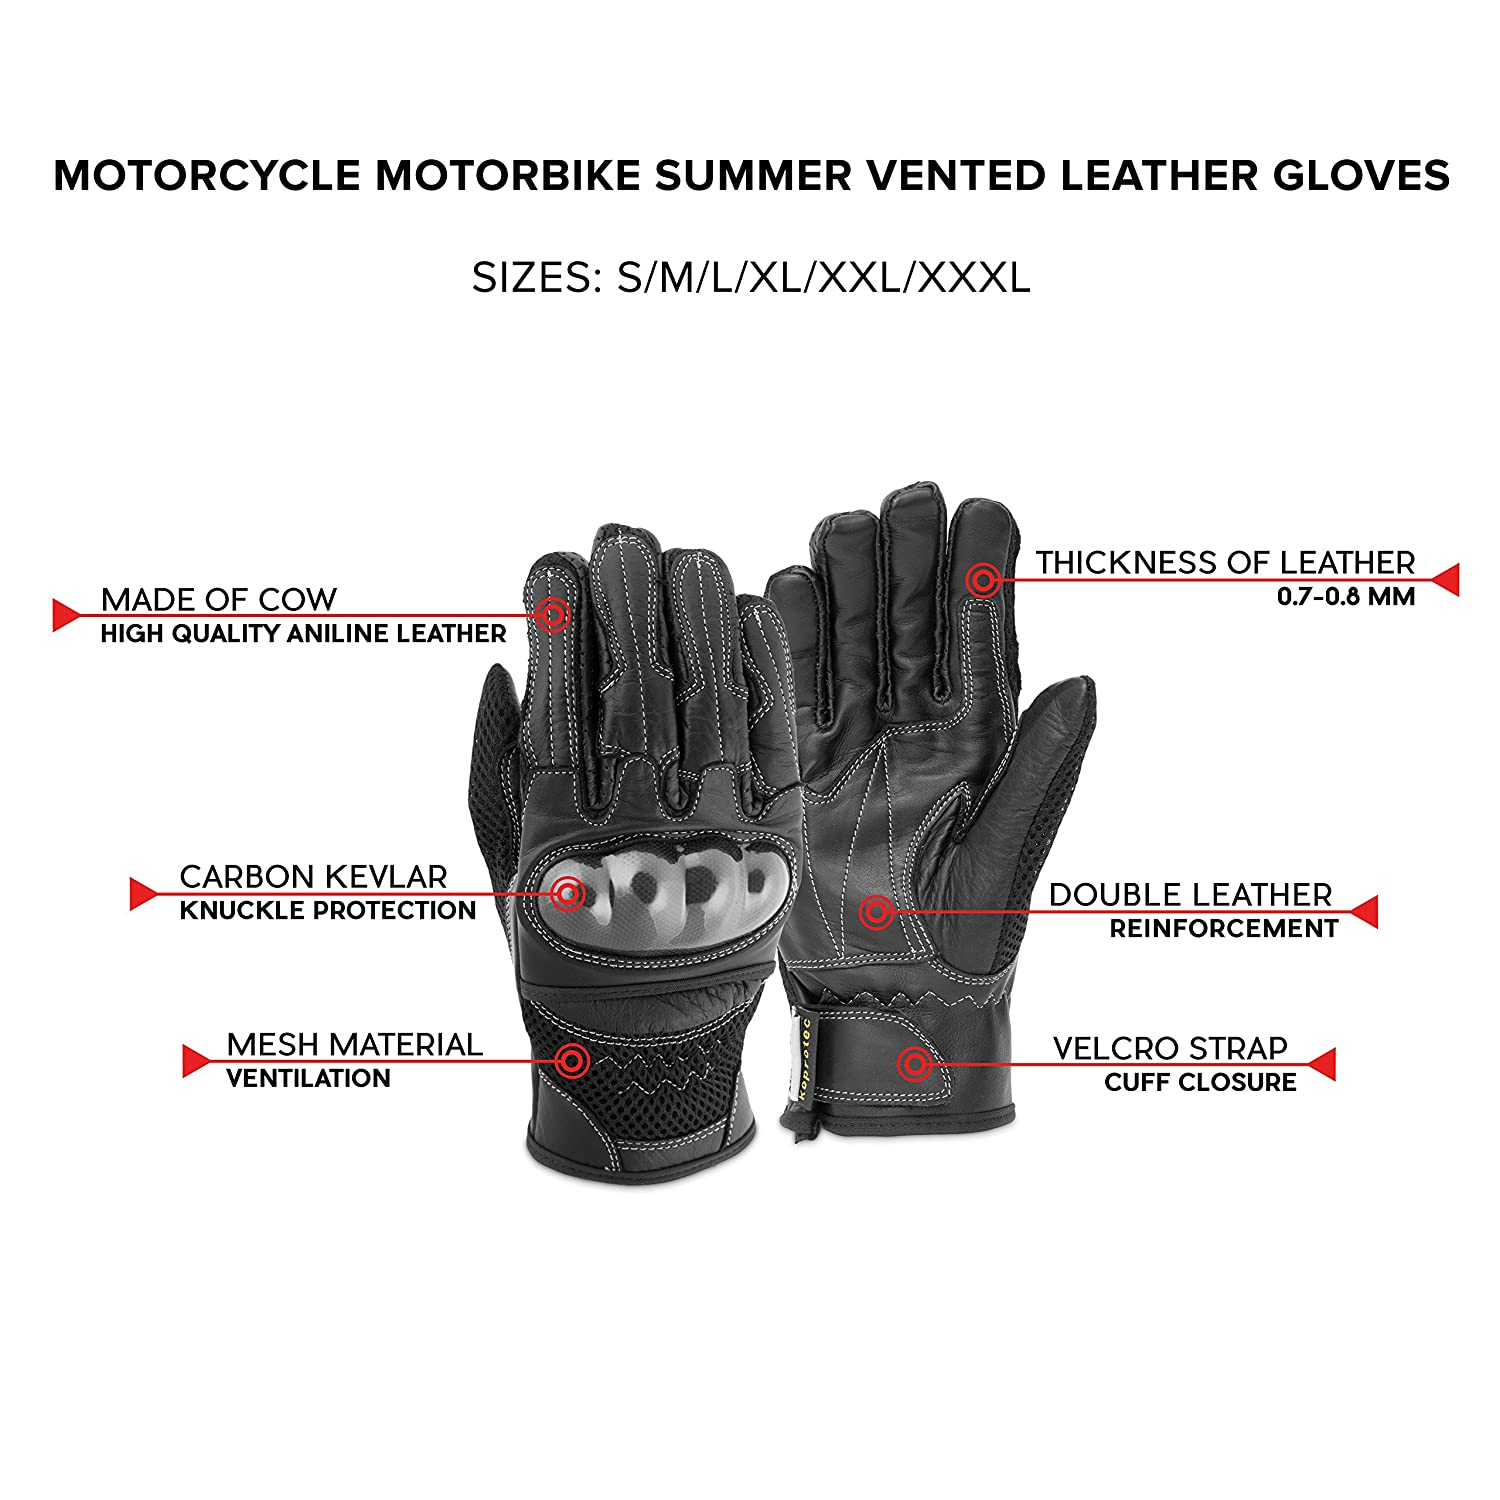 Motorcycle leather gloves amazon - Amazon Com Motero Man Leather Motorcycle Gloves Summer Full Finger Vented Adjustable Carbon Kevlar Knuckle Protectors Motorbike Accessories